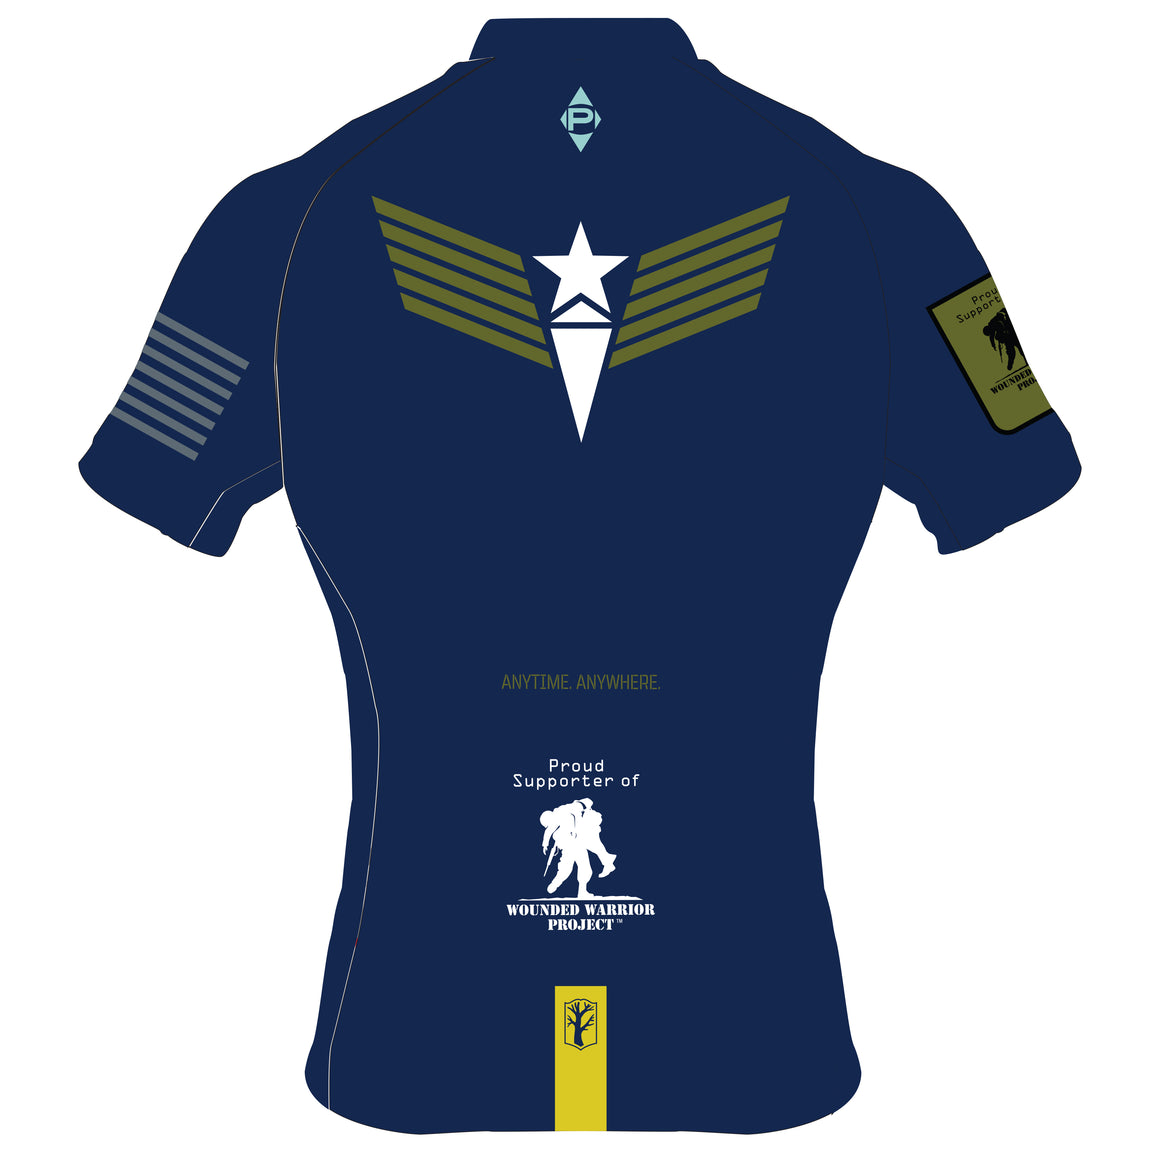 Wounded Warrior Short Sleeve Jersey  (M/W) PRE ORDER